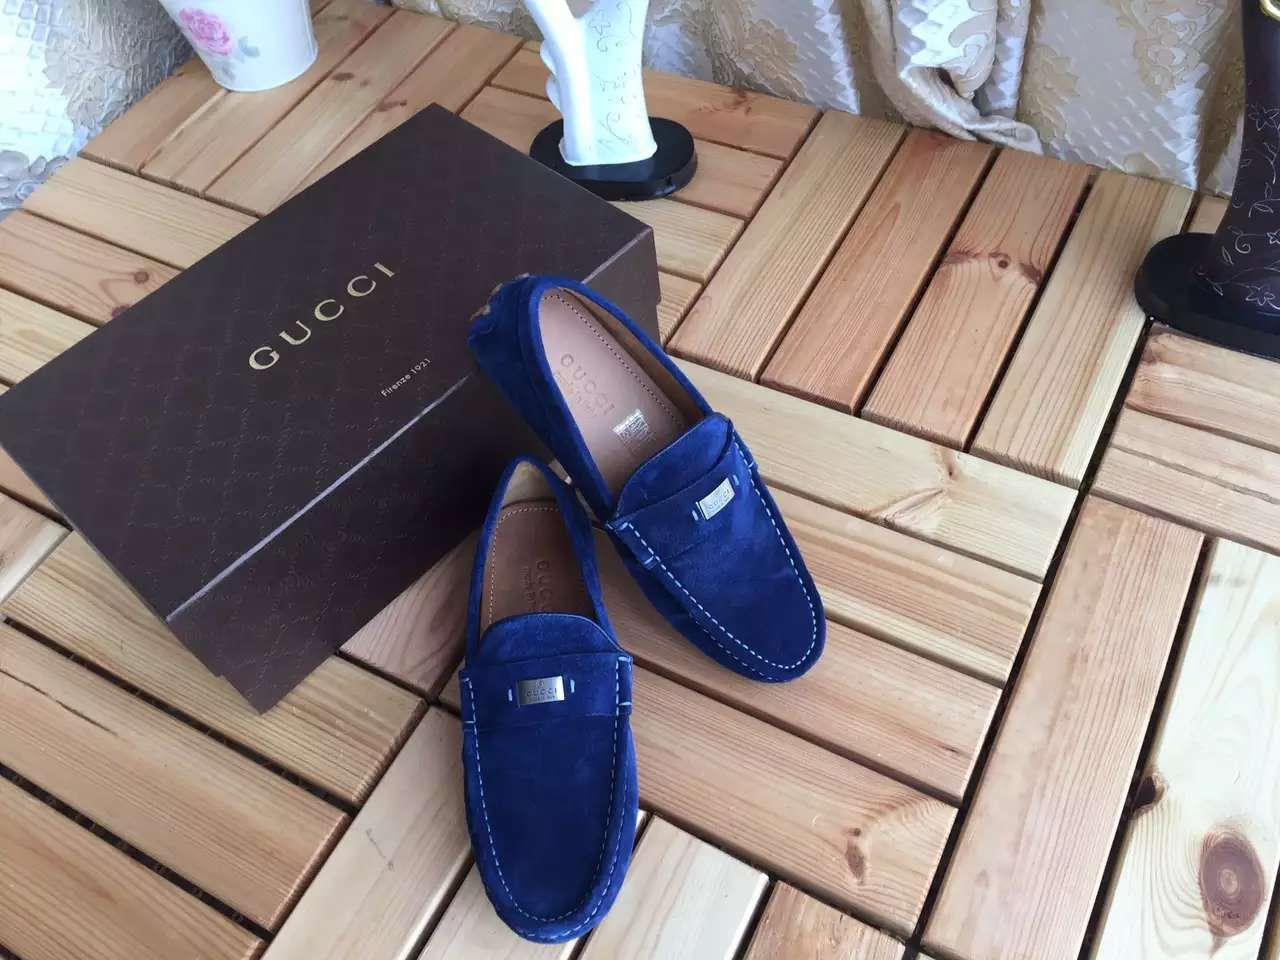 gucci Shoes, ID : 25337(FORSALE:a@yybags.com), gucci handbag leather, gucci dresses on sale, gucci mobile website, gucci buy online usa, gucci business briefcase, gucci camping backpack, gucci cool handbags, gucci travel handbags, gucci original website, the designer of gucci, gucci official site sale, online gucci sale #gucciShoes #gucci #gucci #purse #bag